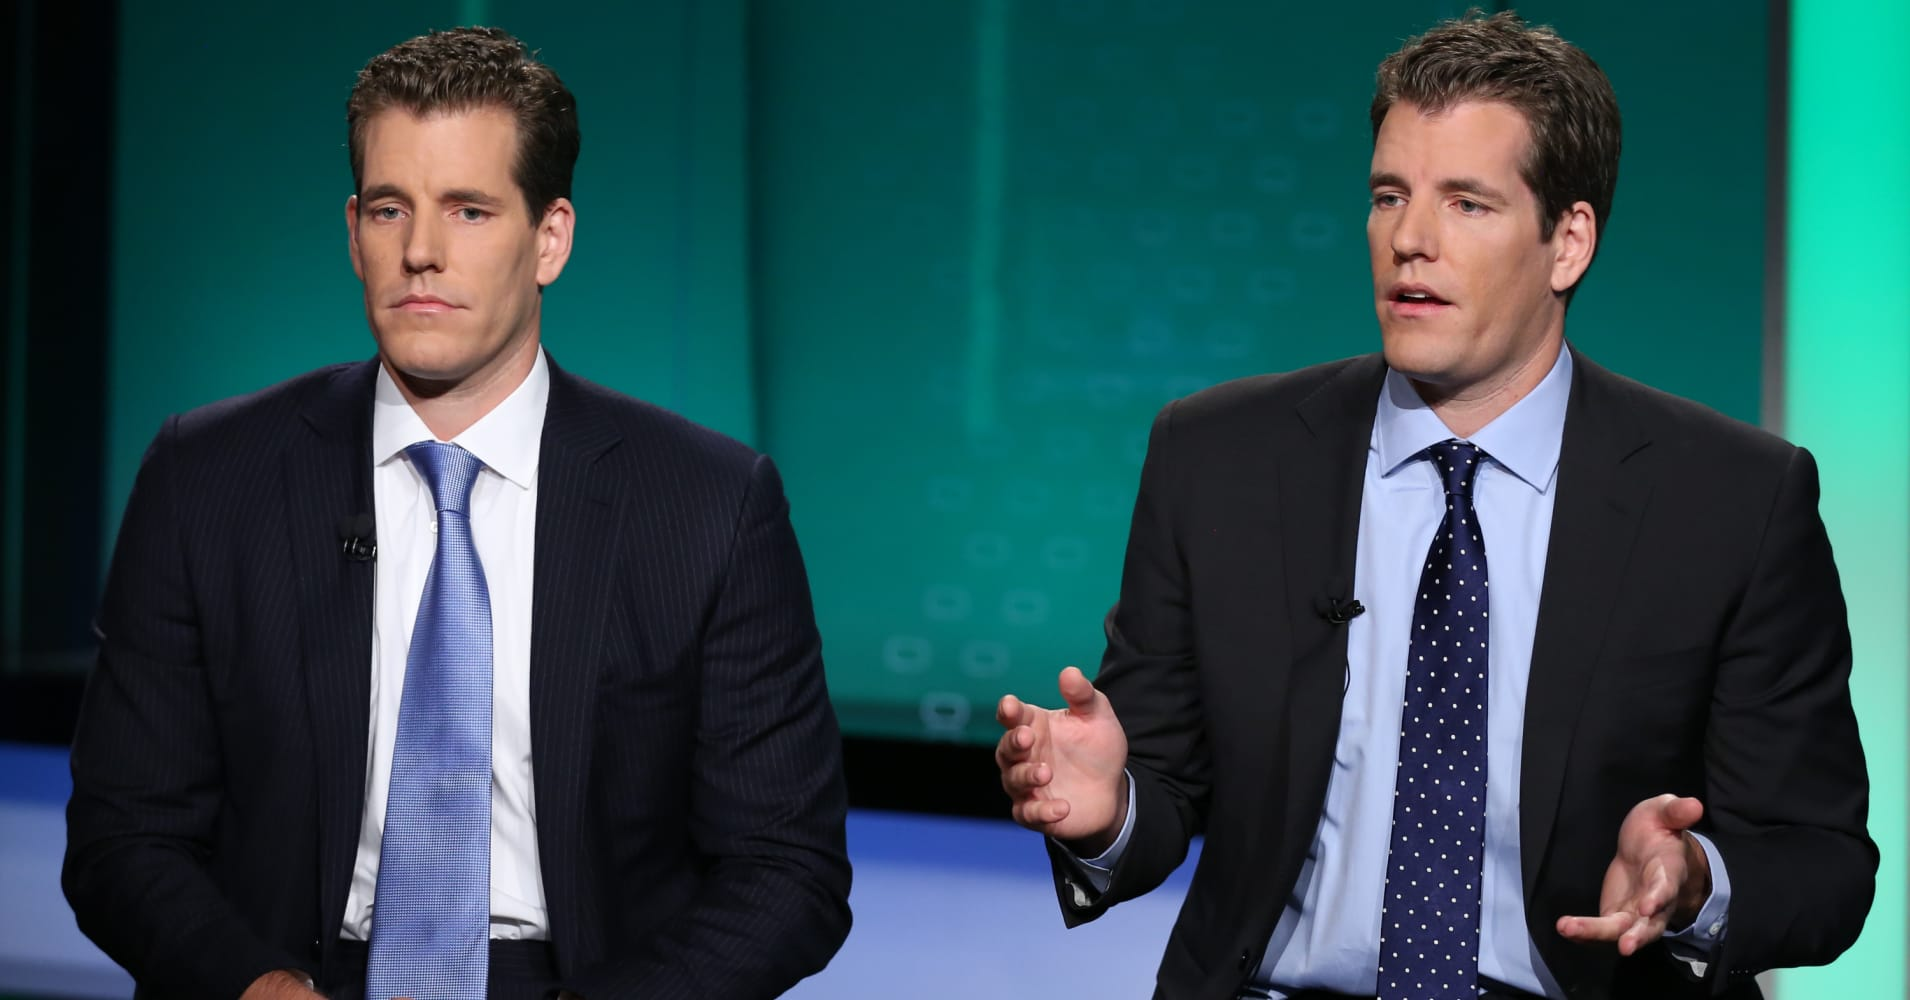 Bitcoin is nearly halfway to the $400 billion value predicted by the Winklevoss twins four years ago